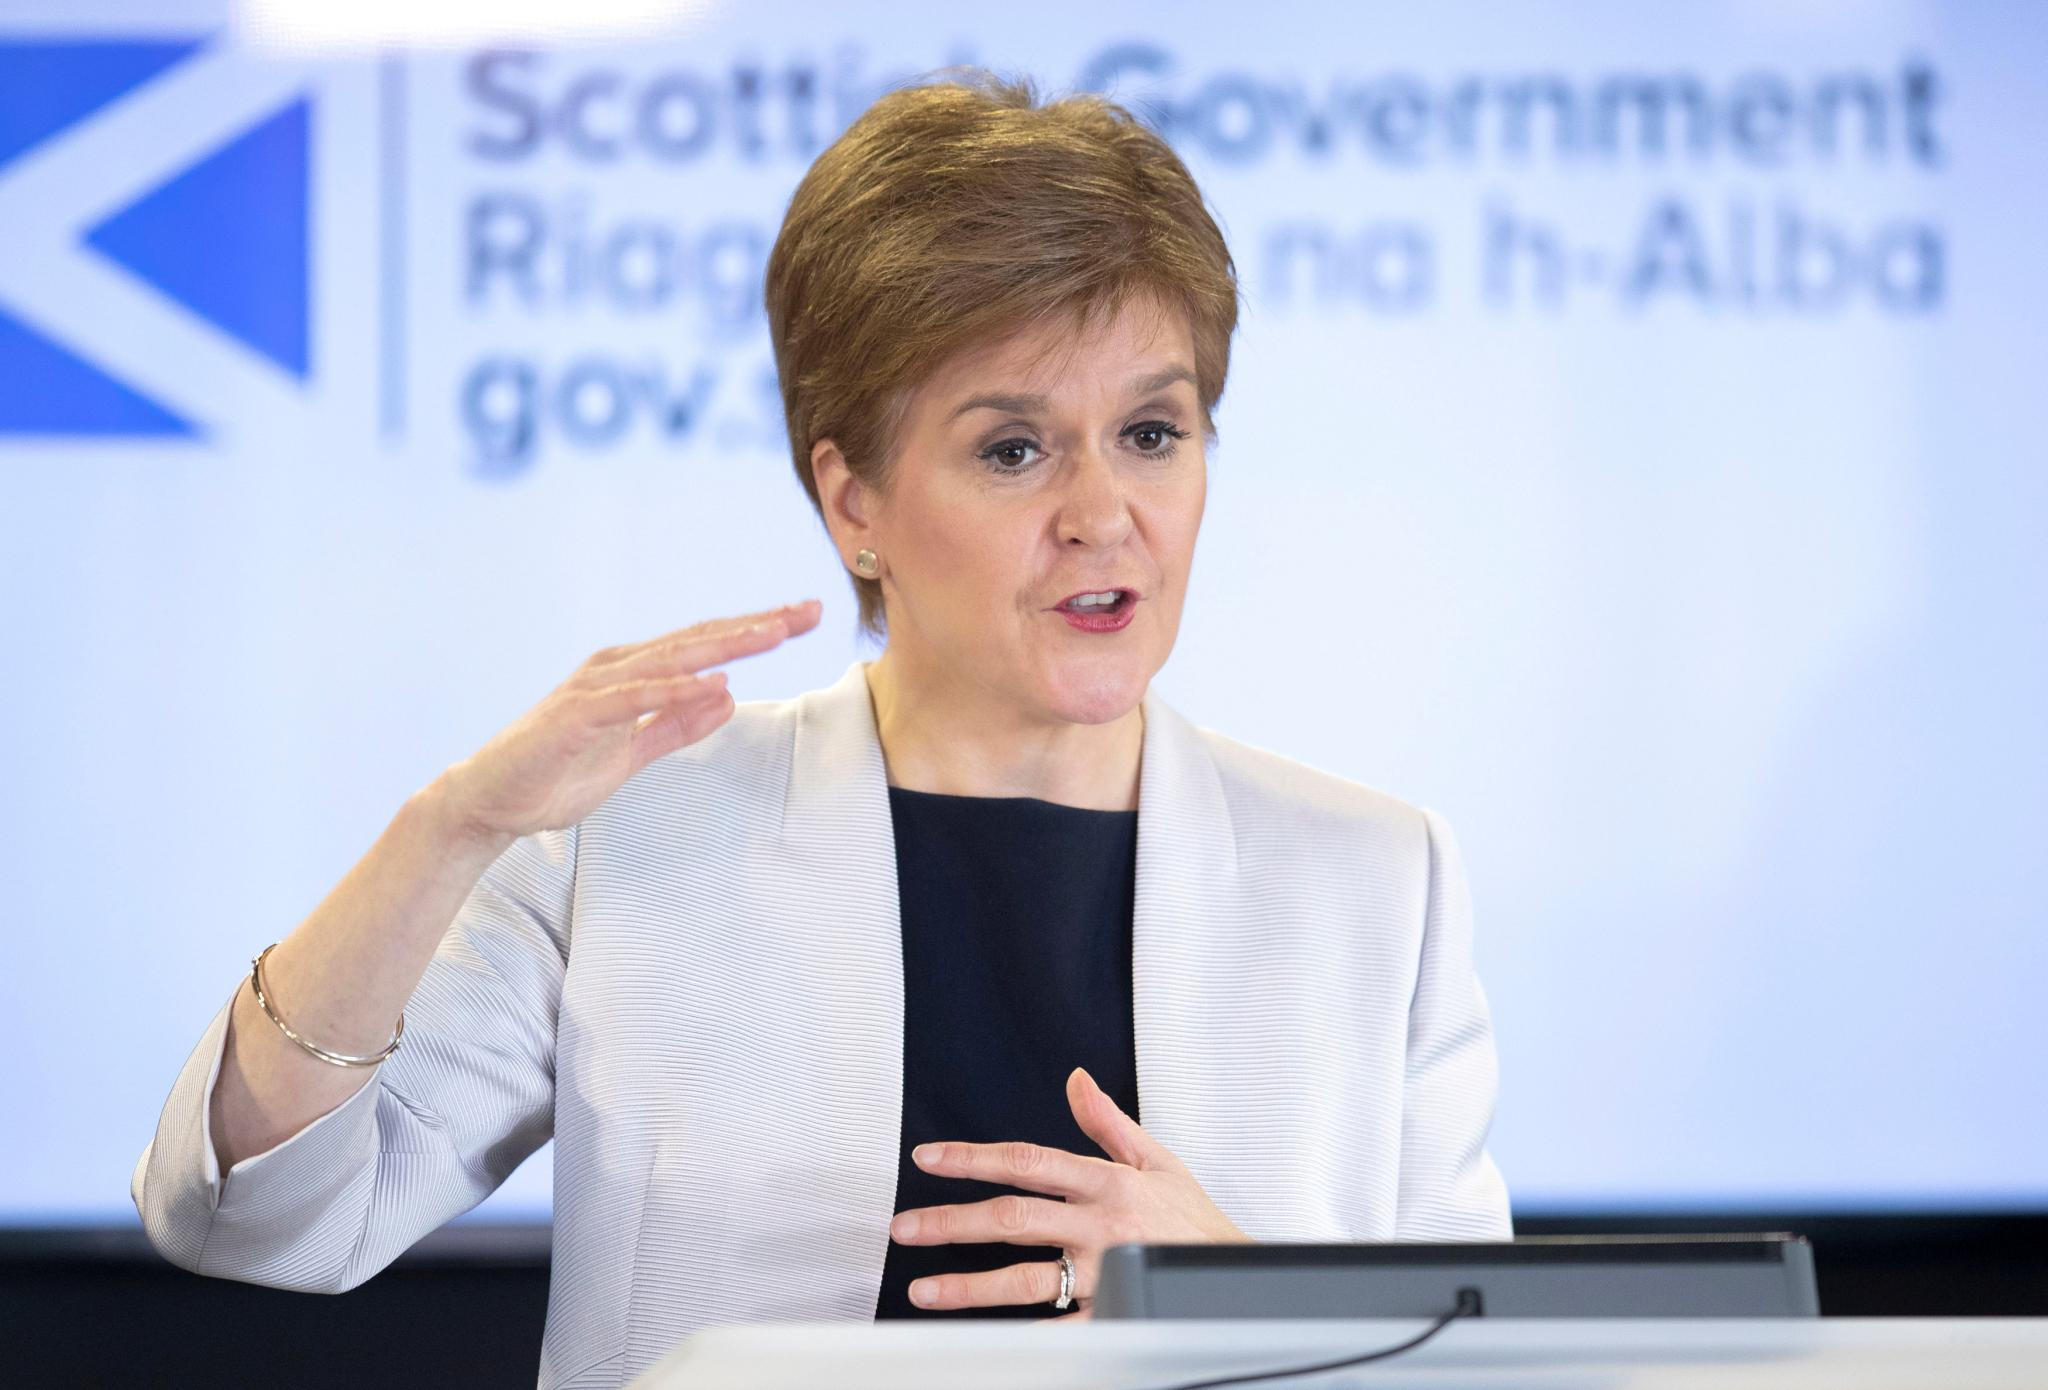 FILE PHOTO: Scotland's First Minister Nicola Sturgeon holds a news conference on the coronavirus disease (COVID-19) outbreak, at St Andrew's House in Edinburgh